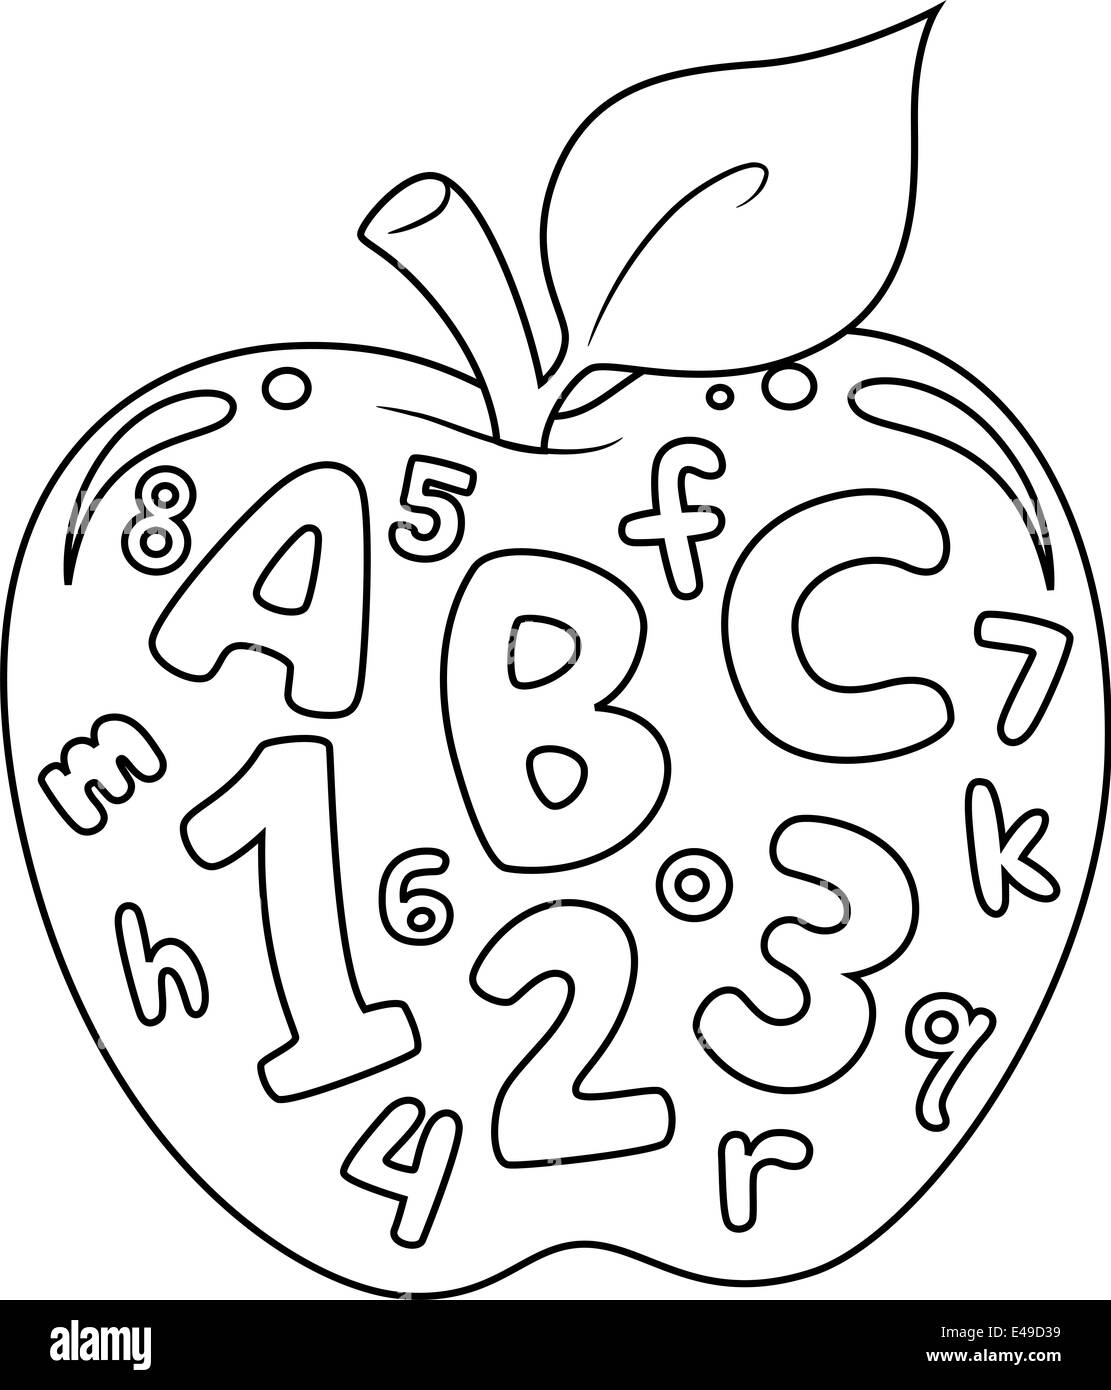 Coloring Book Illustration Featuring an Apple with Numbers and Stock ...